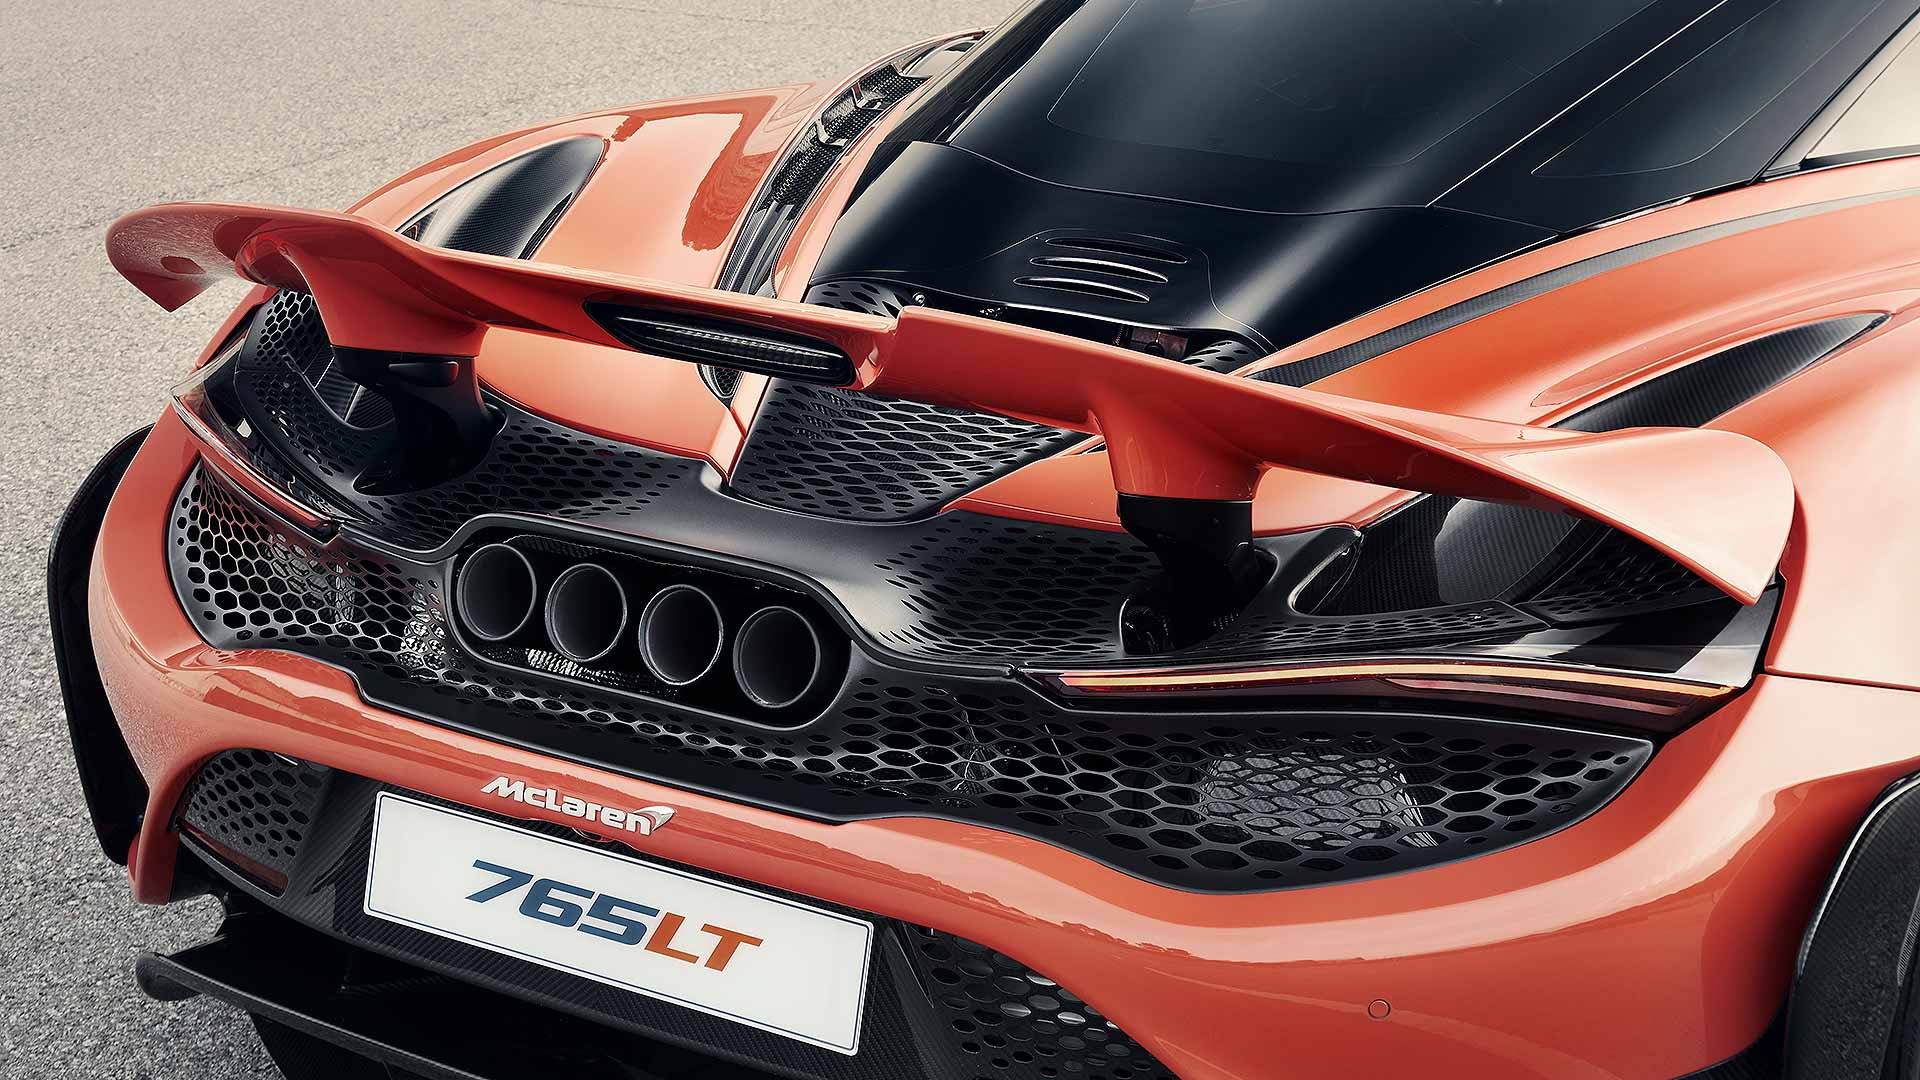 McLaren assisting development of ventilators